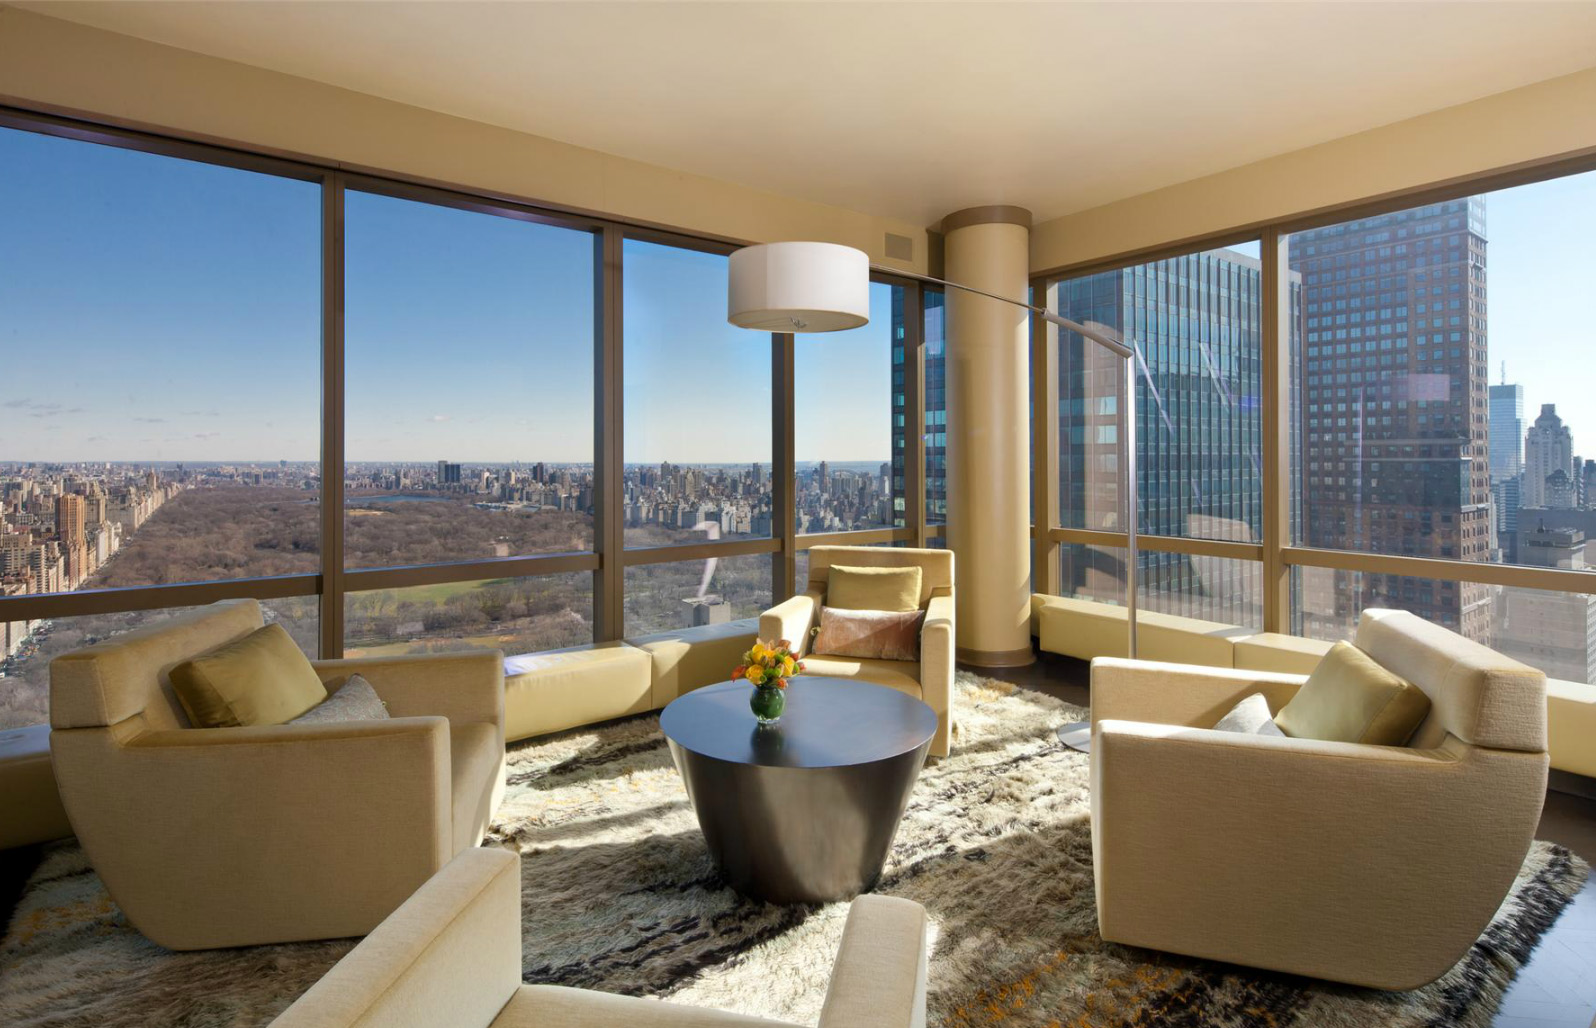 Buy christopher meloni 39 s place and he 39 ll throw in a for Buy apartment in manhattan